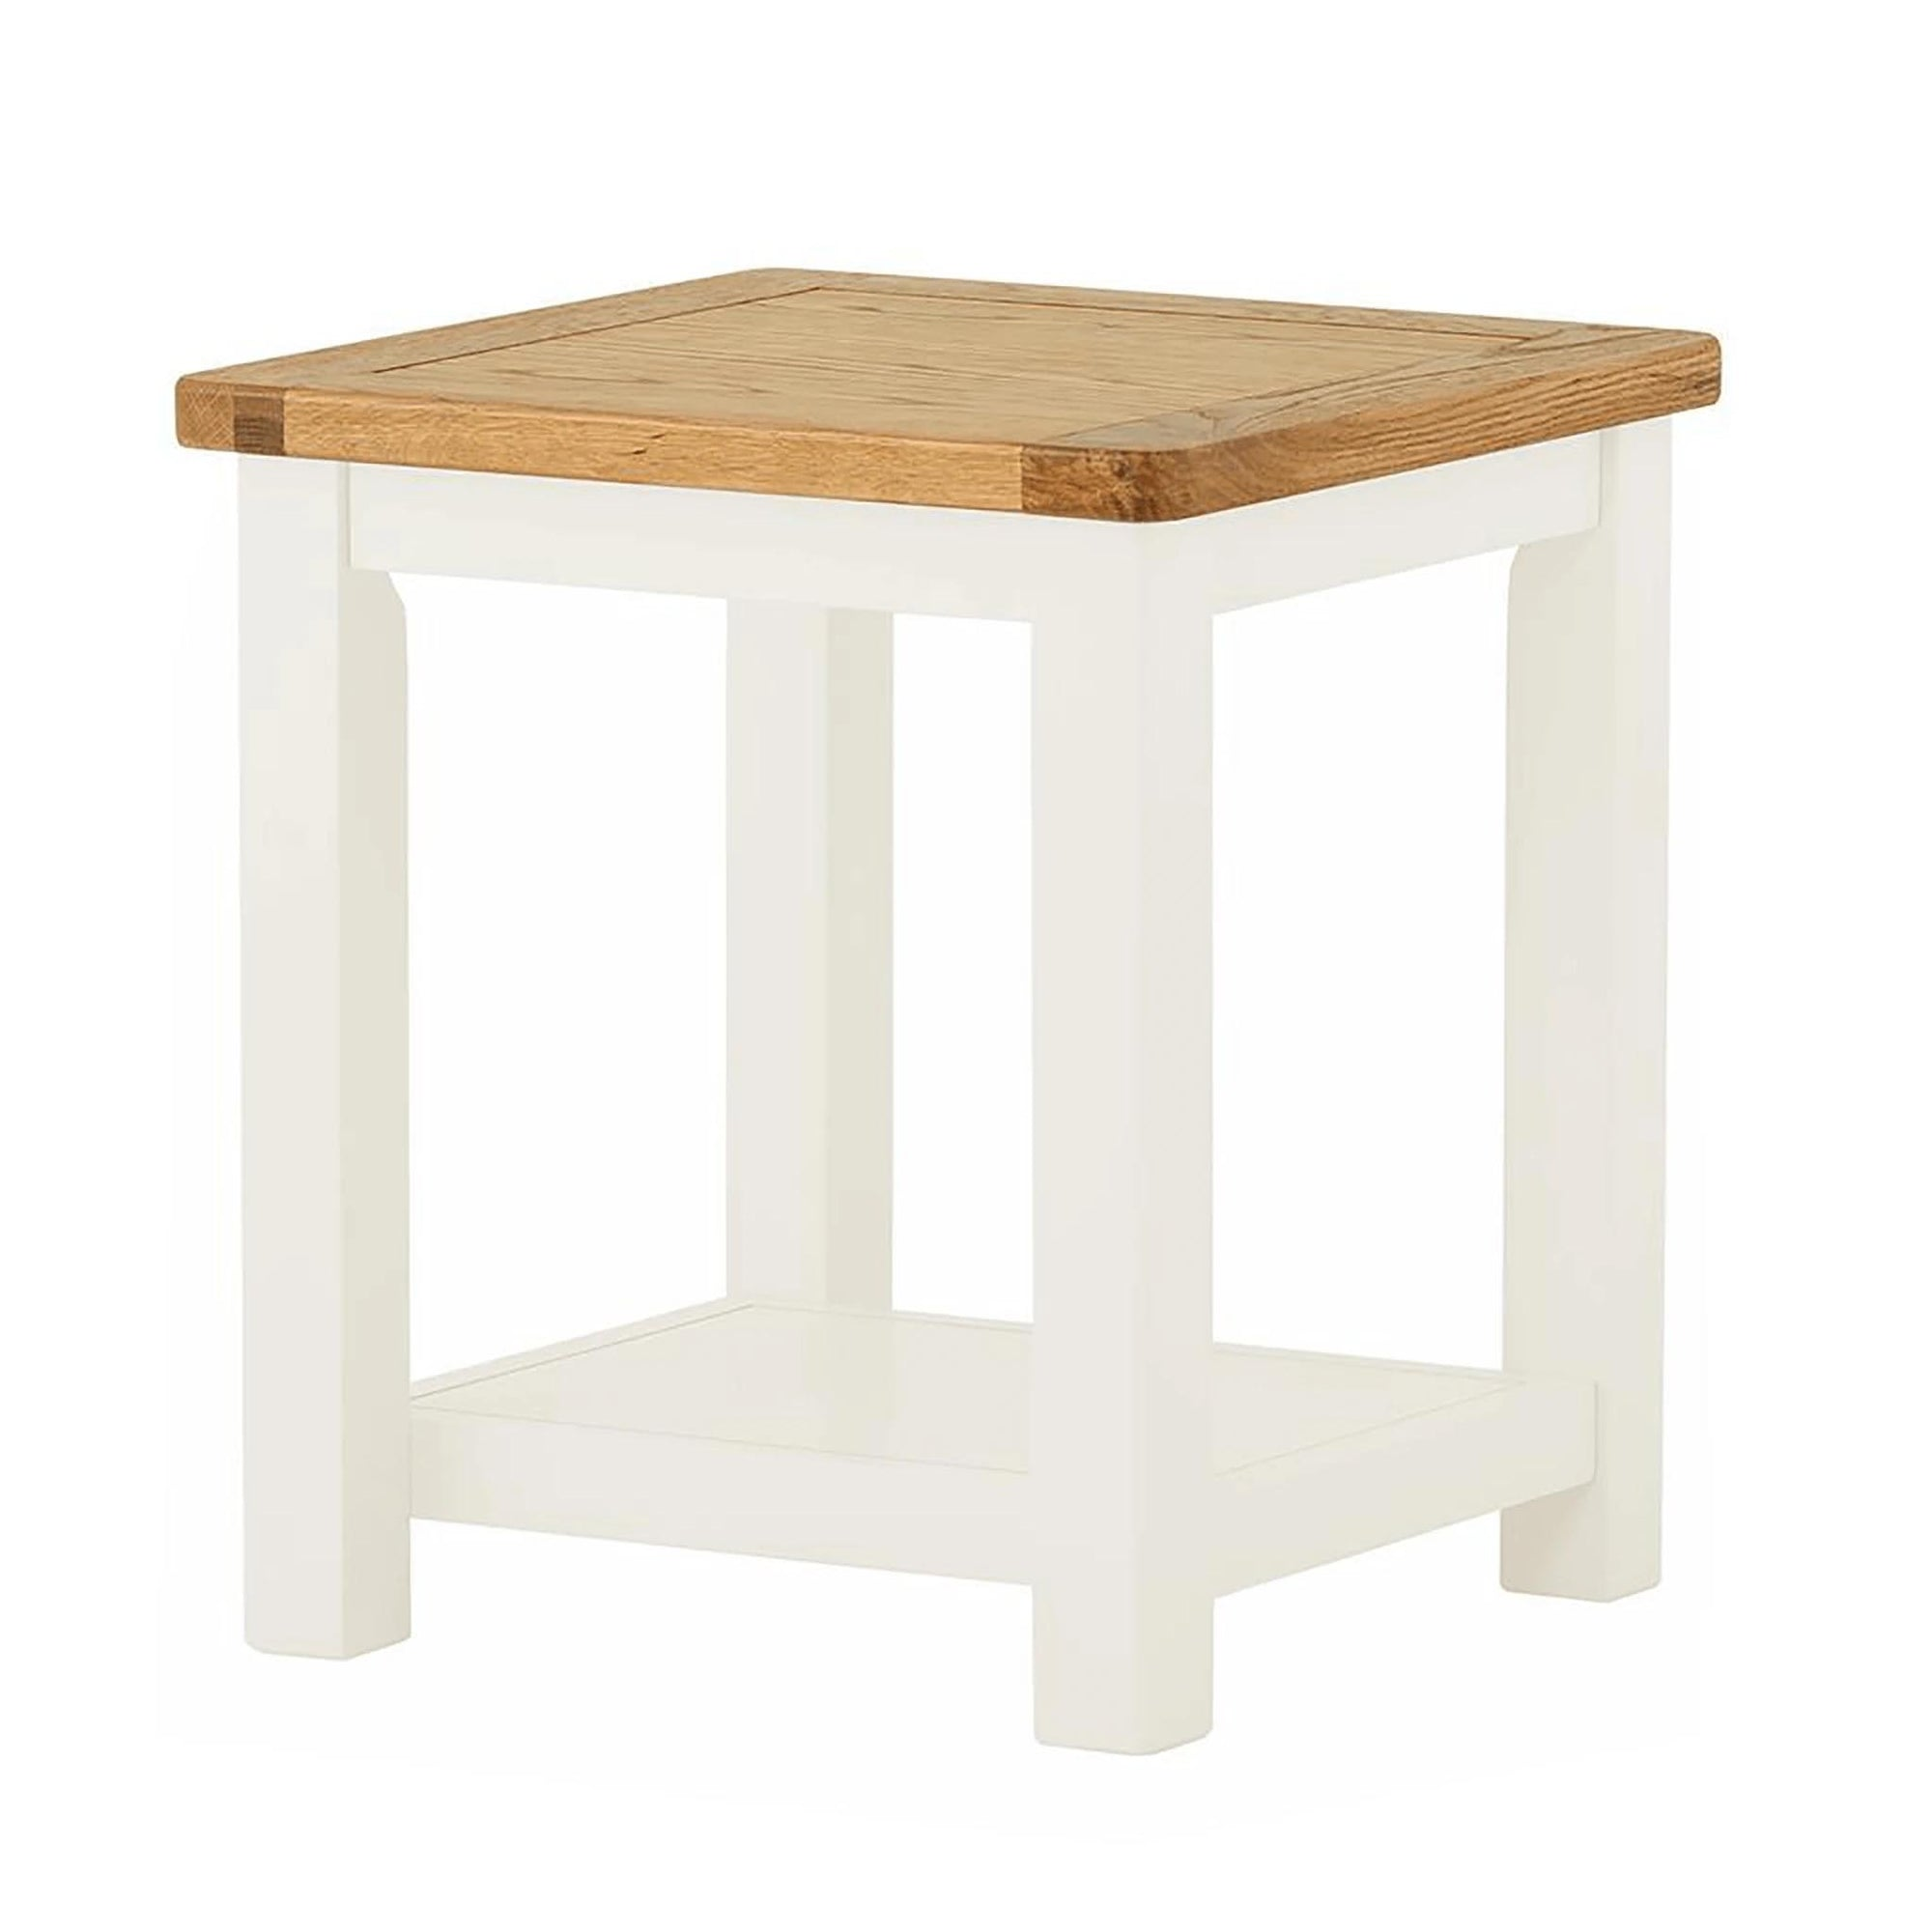 The Padstow White Small Wooden Side Lamp Table from Roseland Furniture